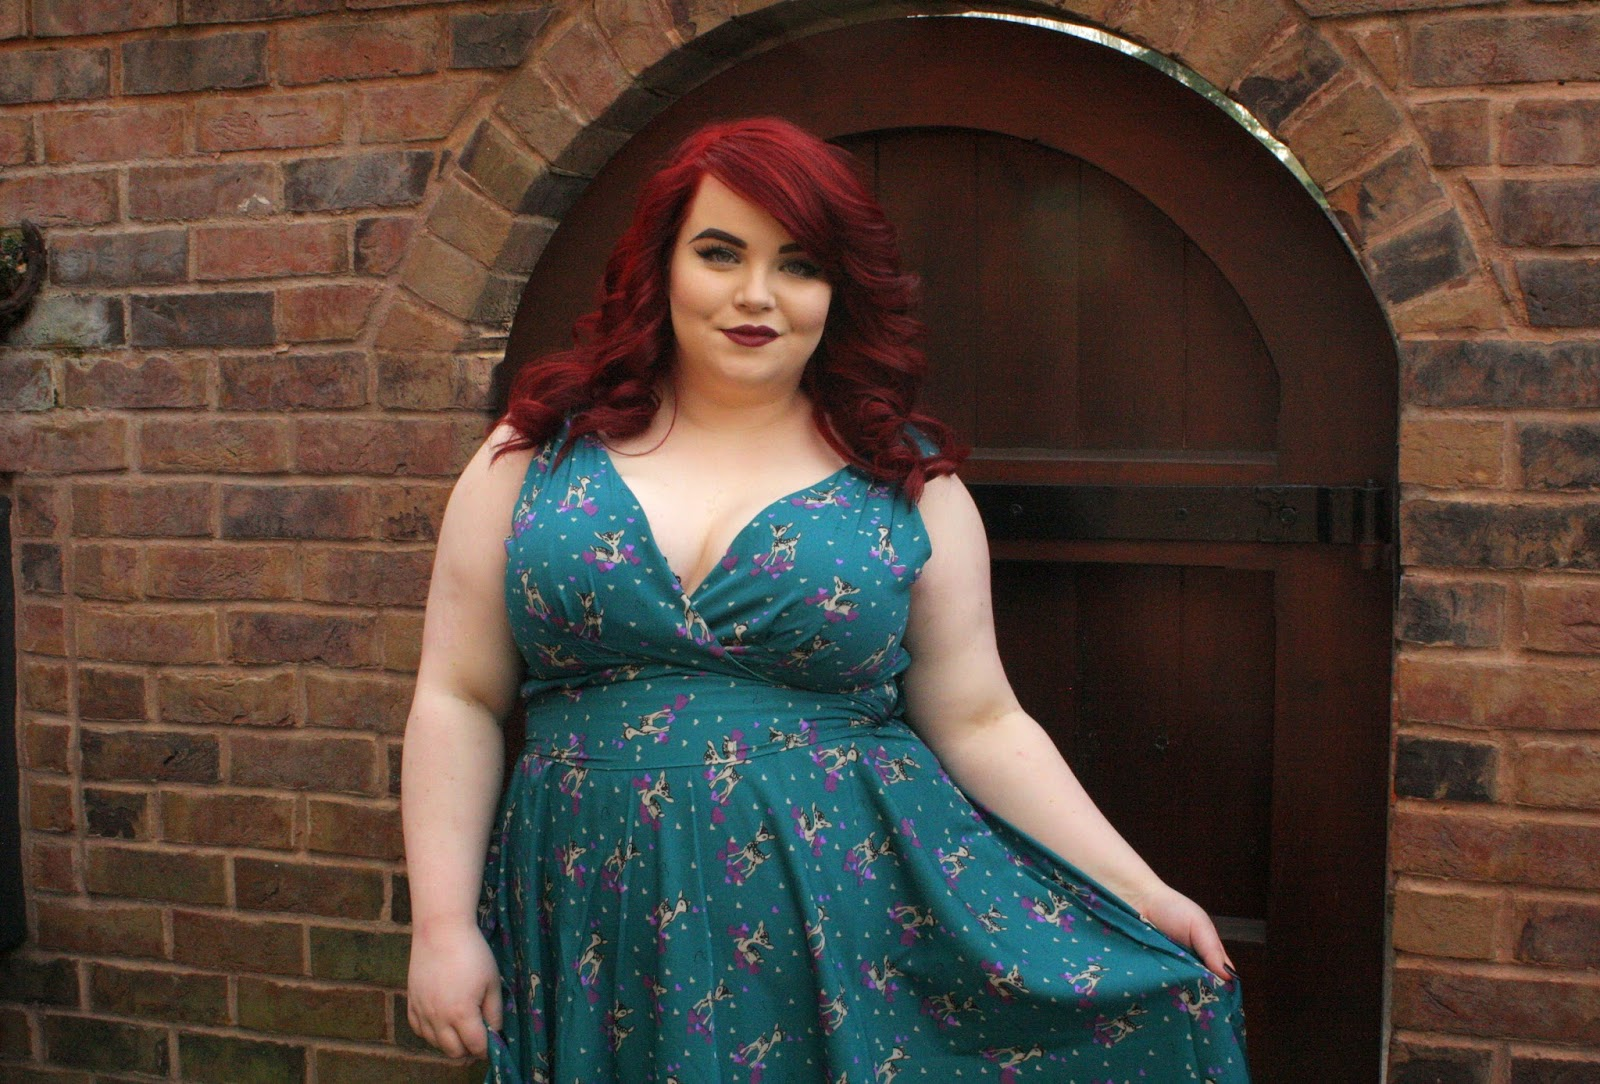 BBW Couture'a Teal Deer Design 1950s Vintage Party Dress, georgina grogan, shemightbeloved.